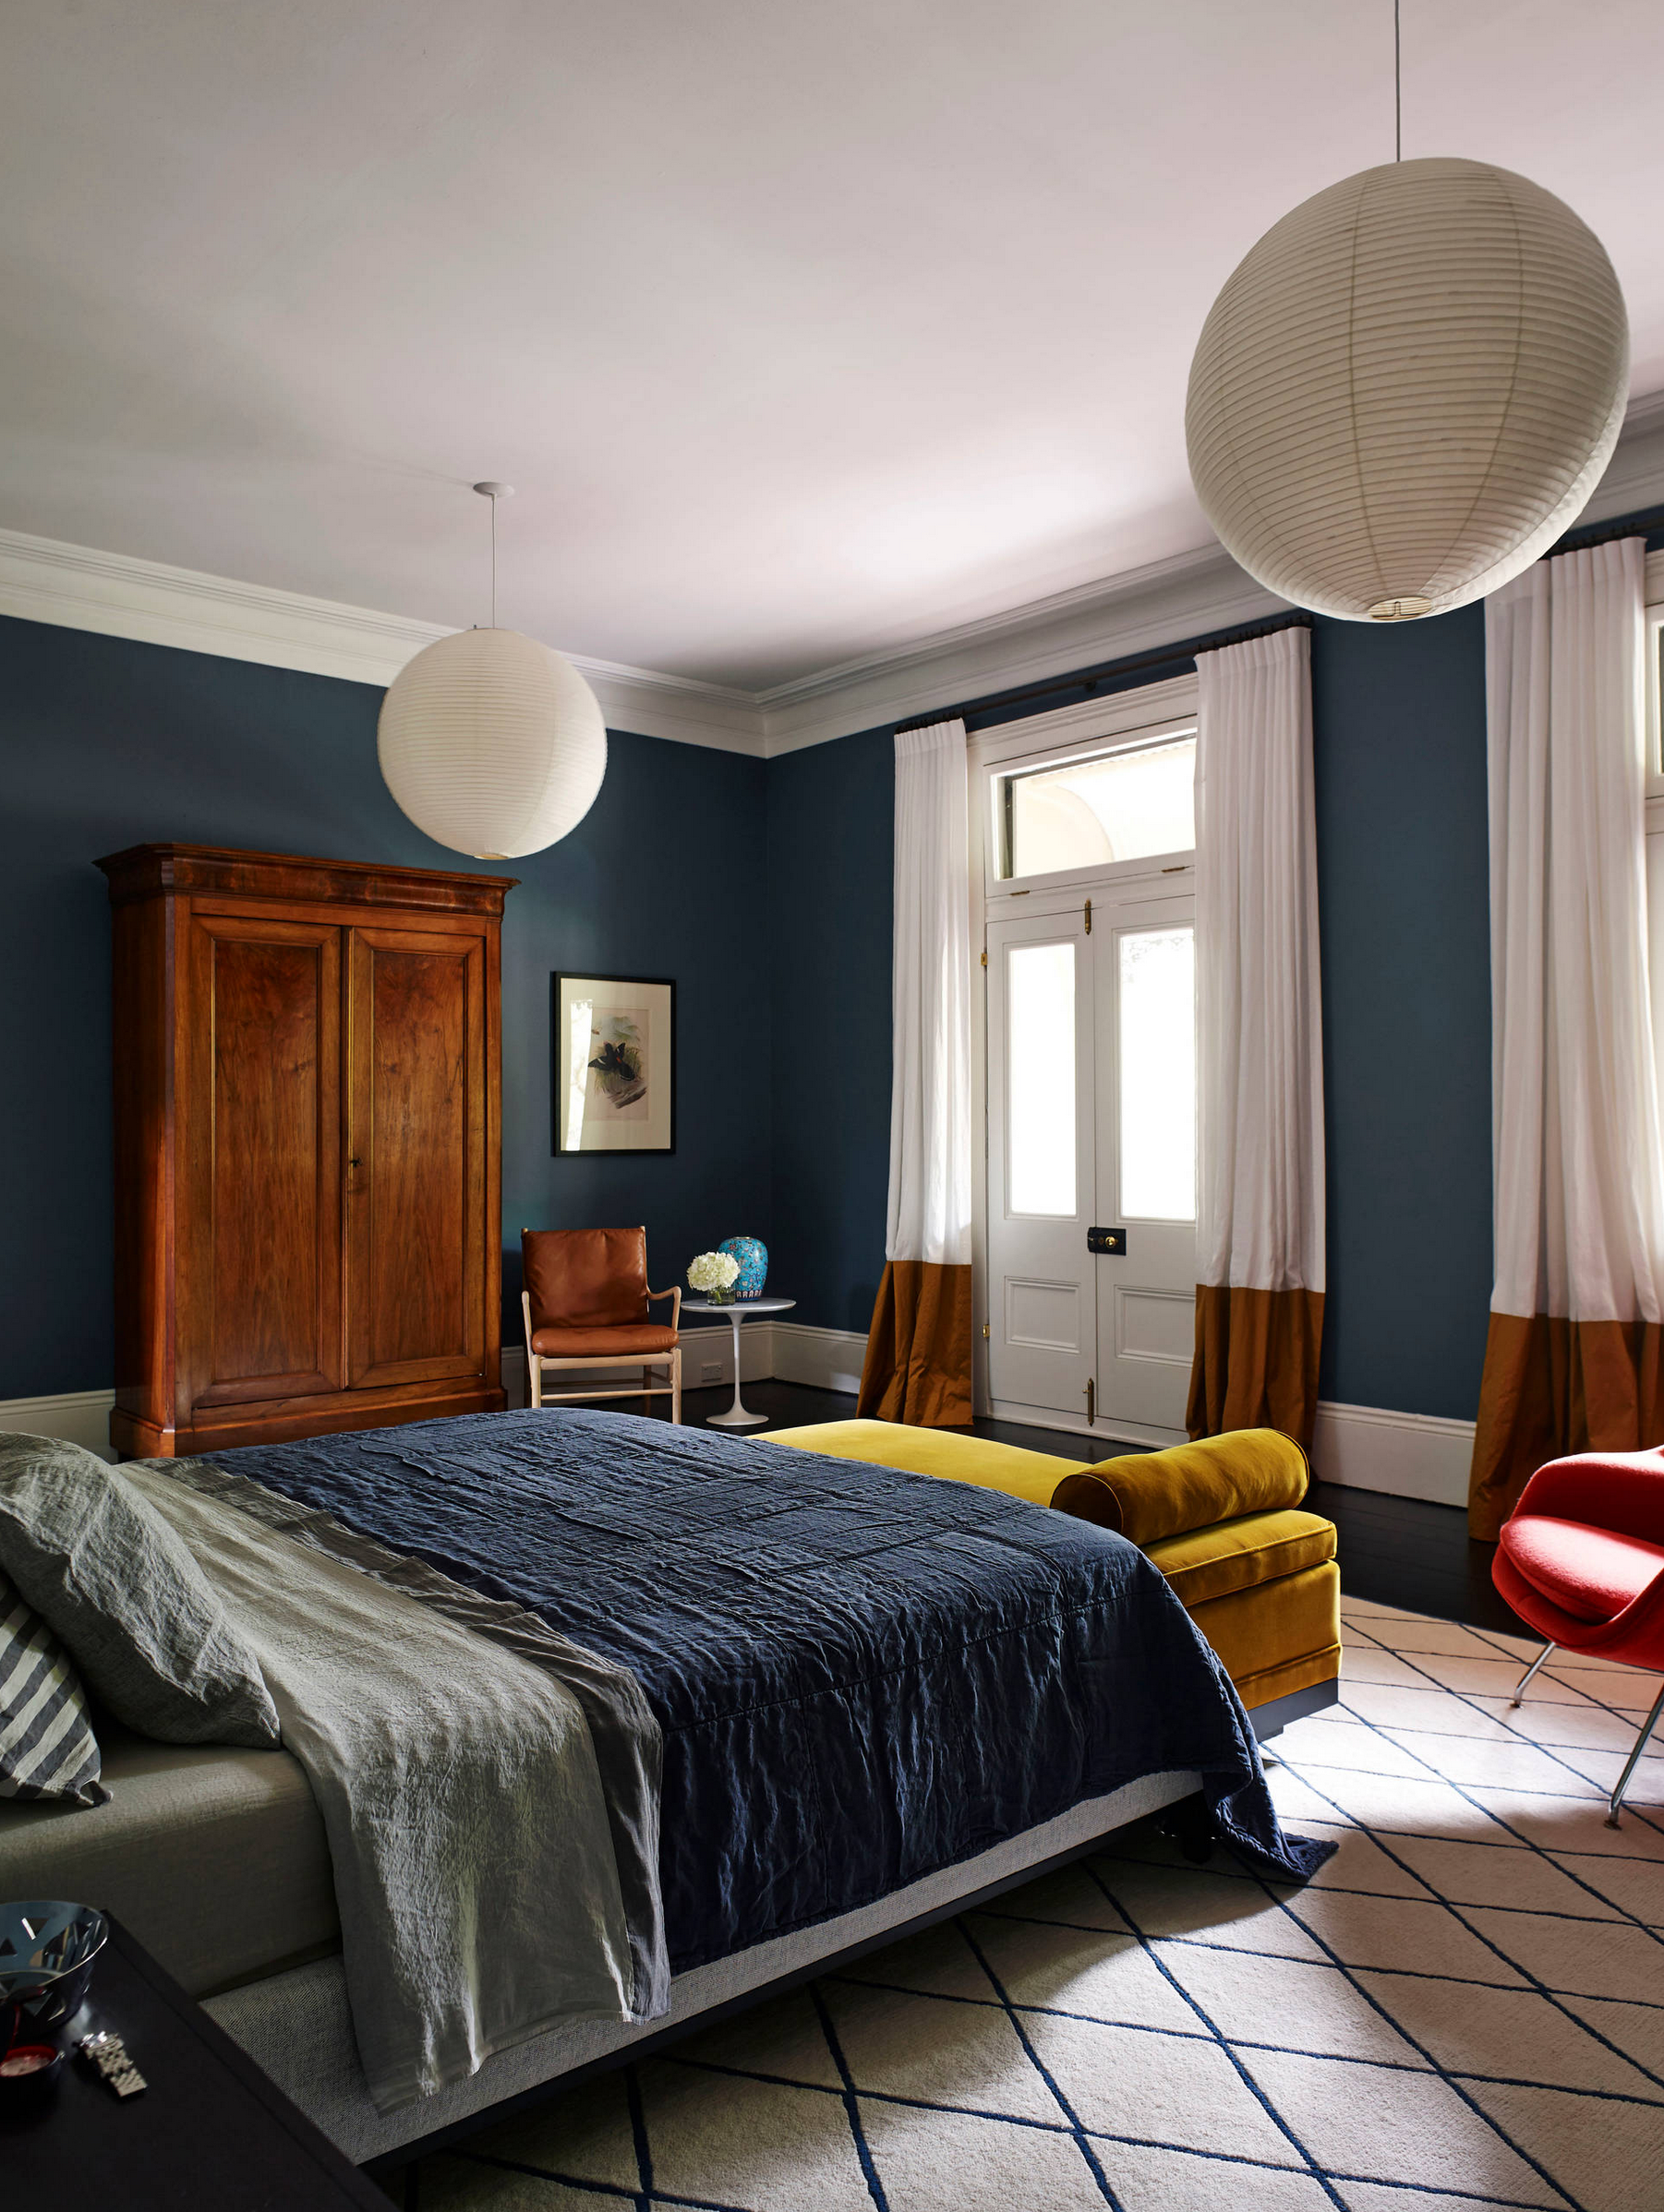 Best Navy and Mustard Bedroom Ideas - Image via Houzz, Photo by Anson Smart, Design by Arent & Pyke